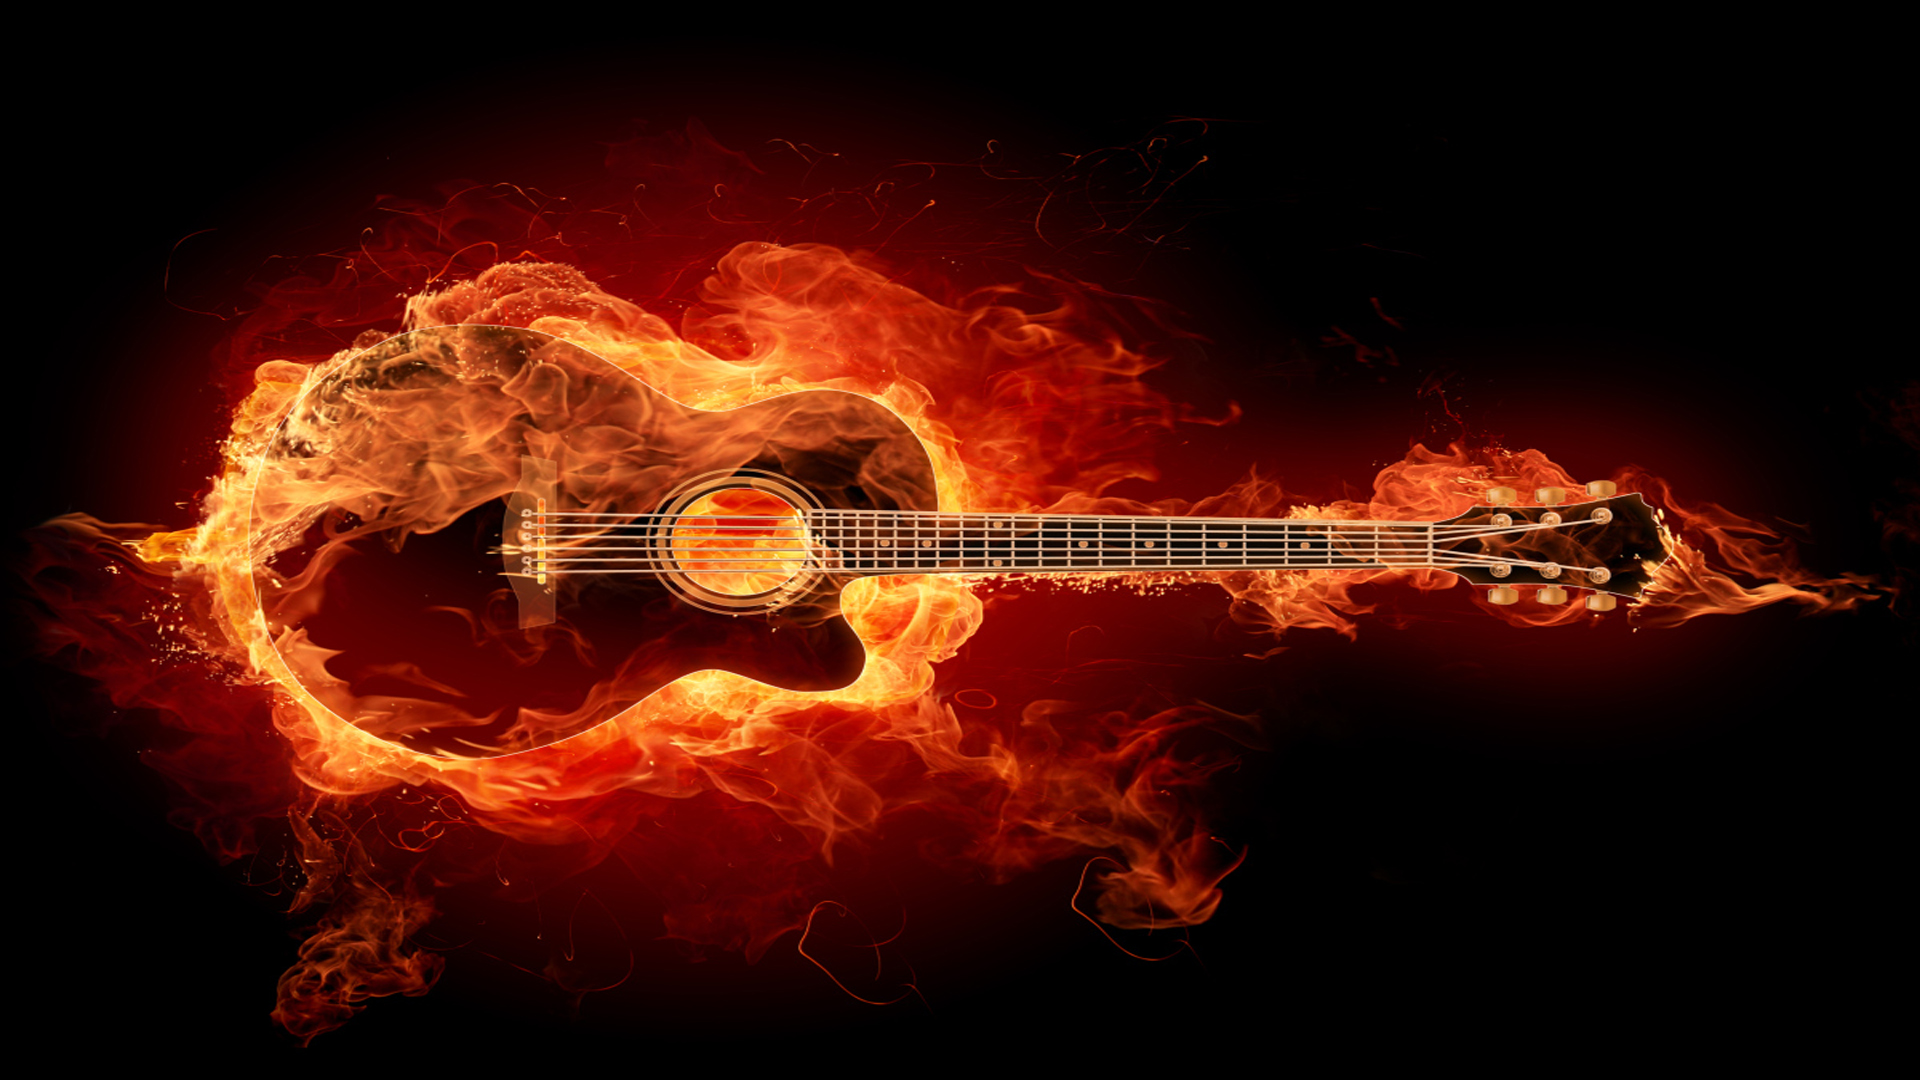 Guitar in Flames Wallpapers